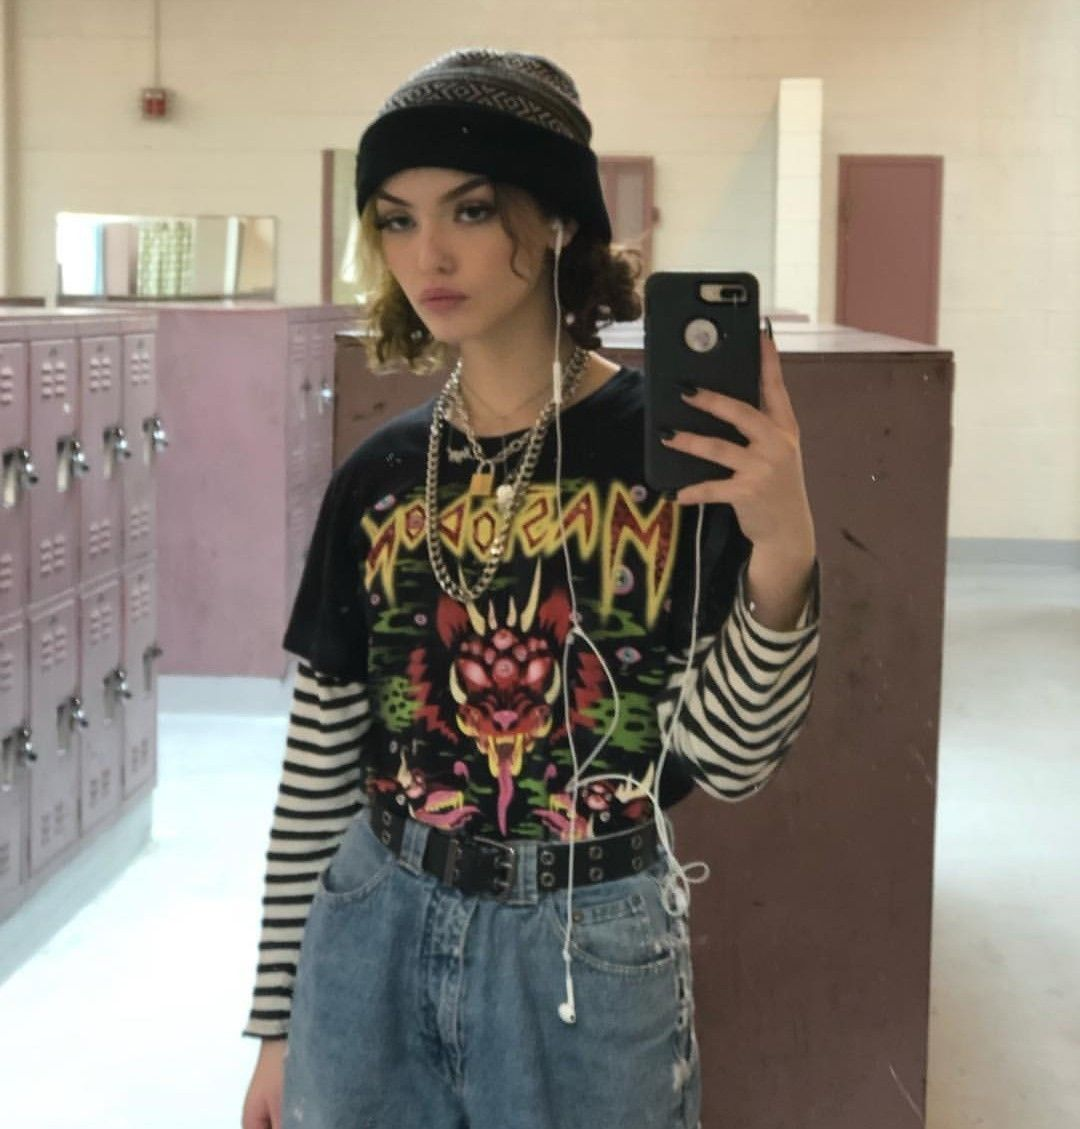 Pin By Camila Pizziolo On Egirl Aesthetic Clothes Fashion Inspo Outfits Retro Outfits